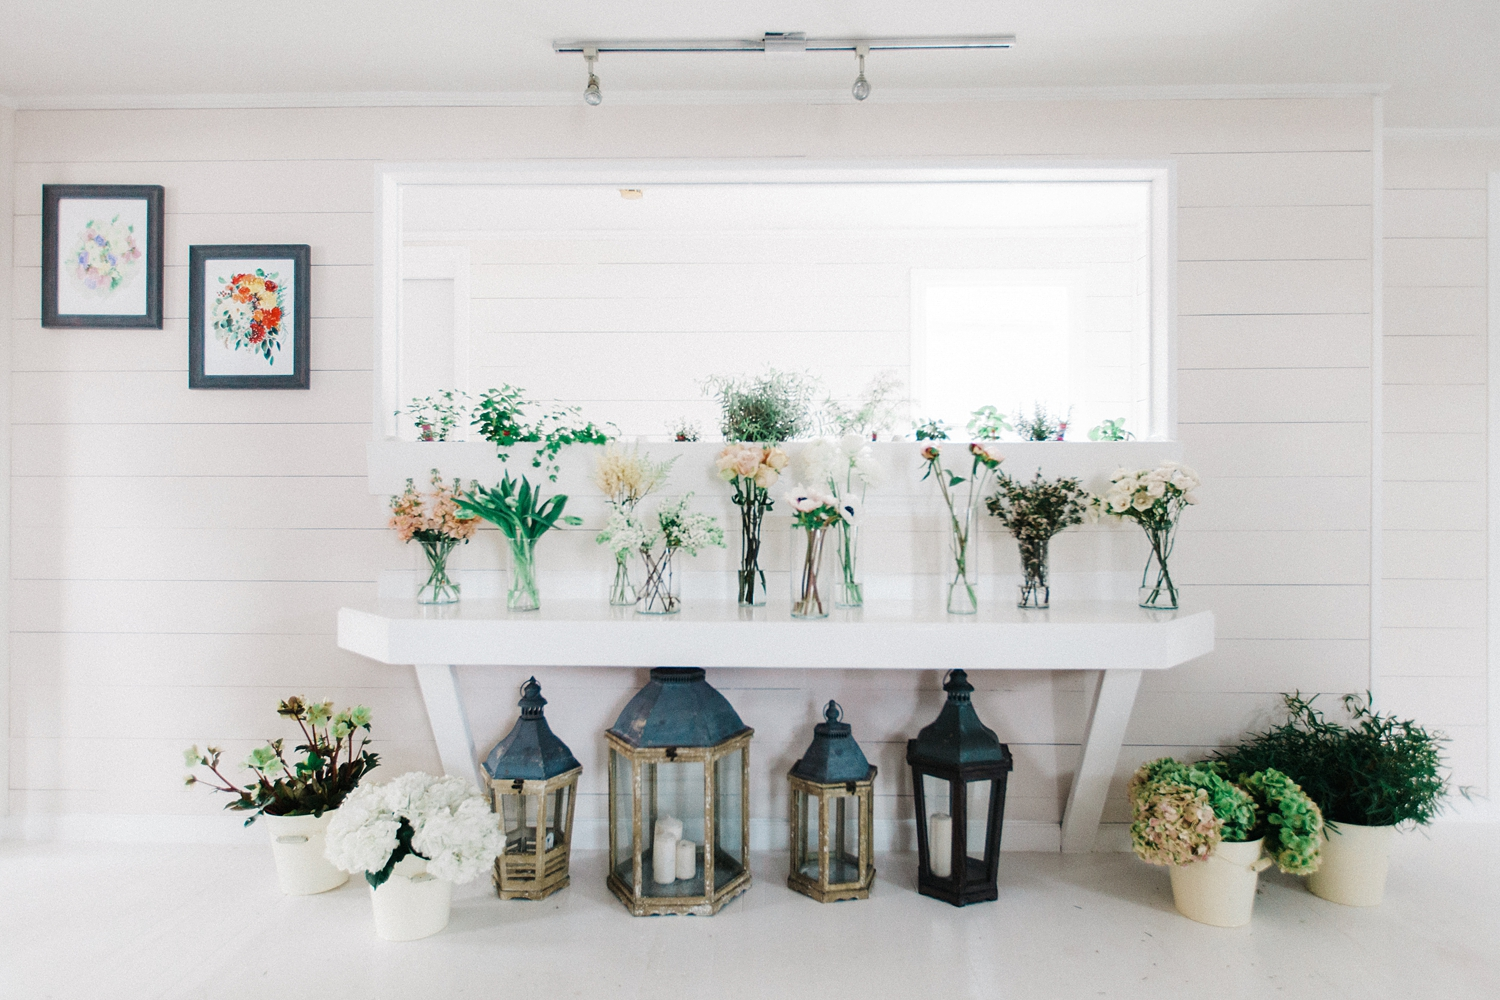 Showcase of flowers being used for designs.